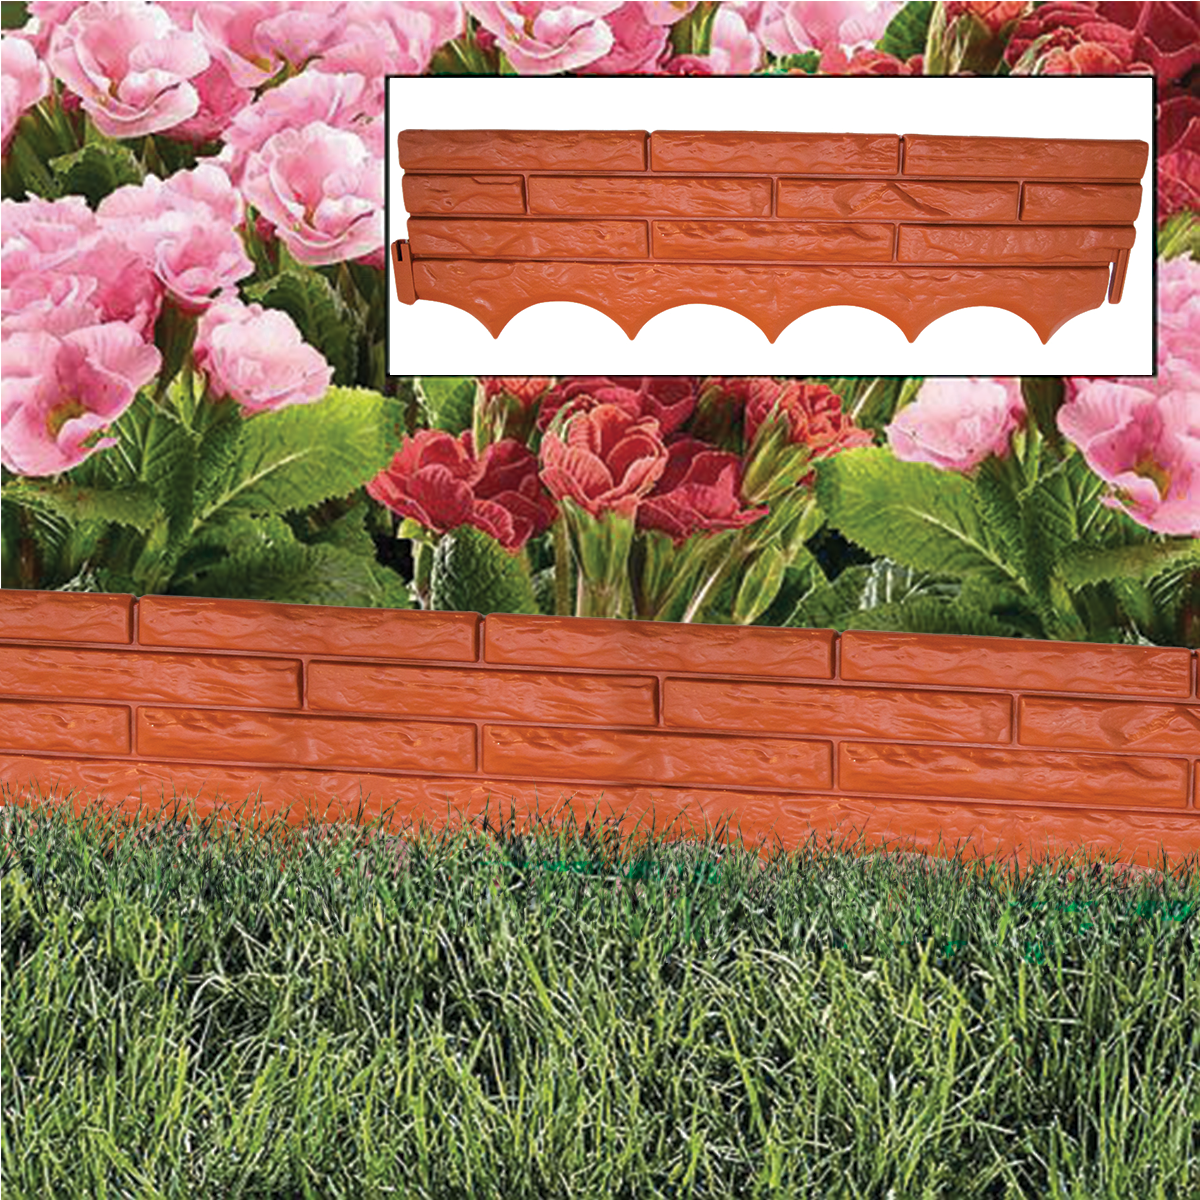 RED BRICK WALL GARDEN EDGING PLASTIC LAWN FLOWER BED BORDER GRASS PATH LINER